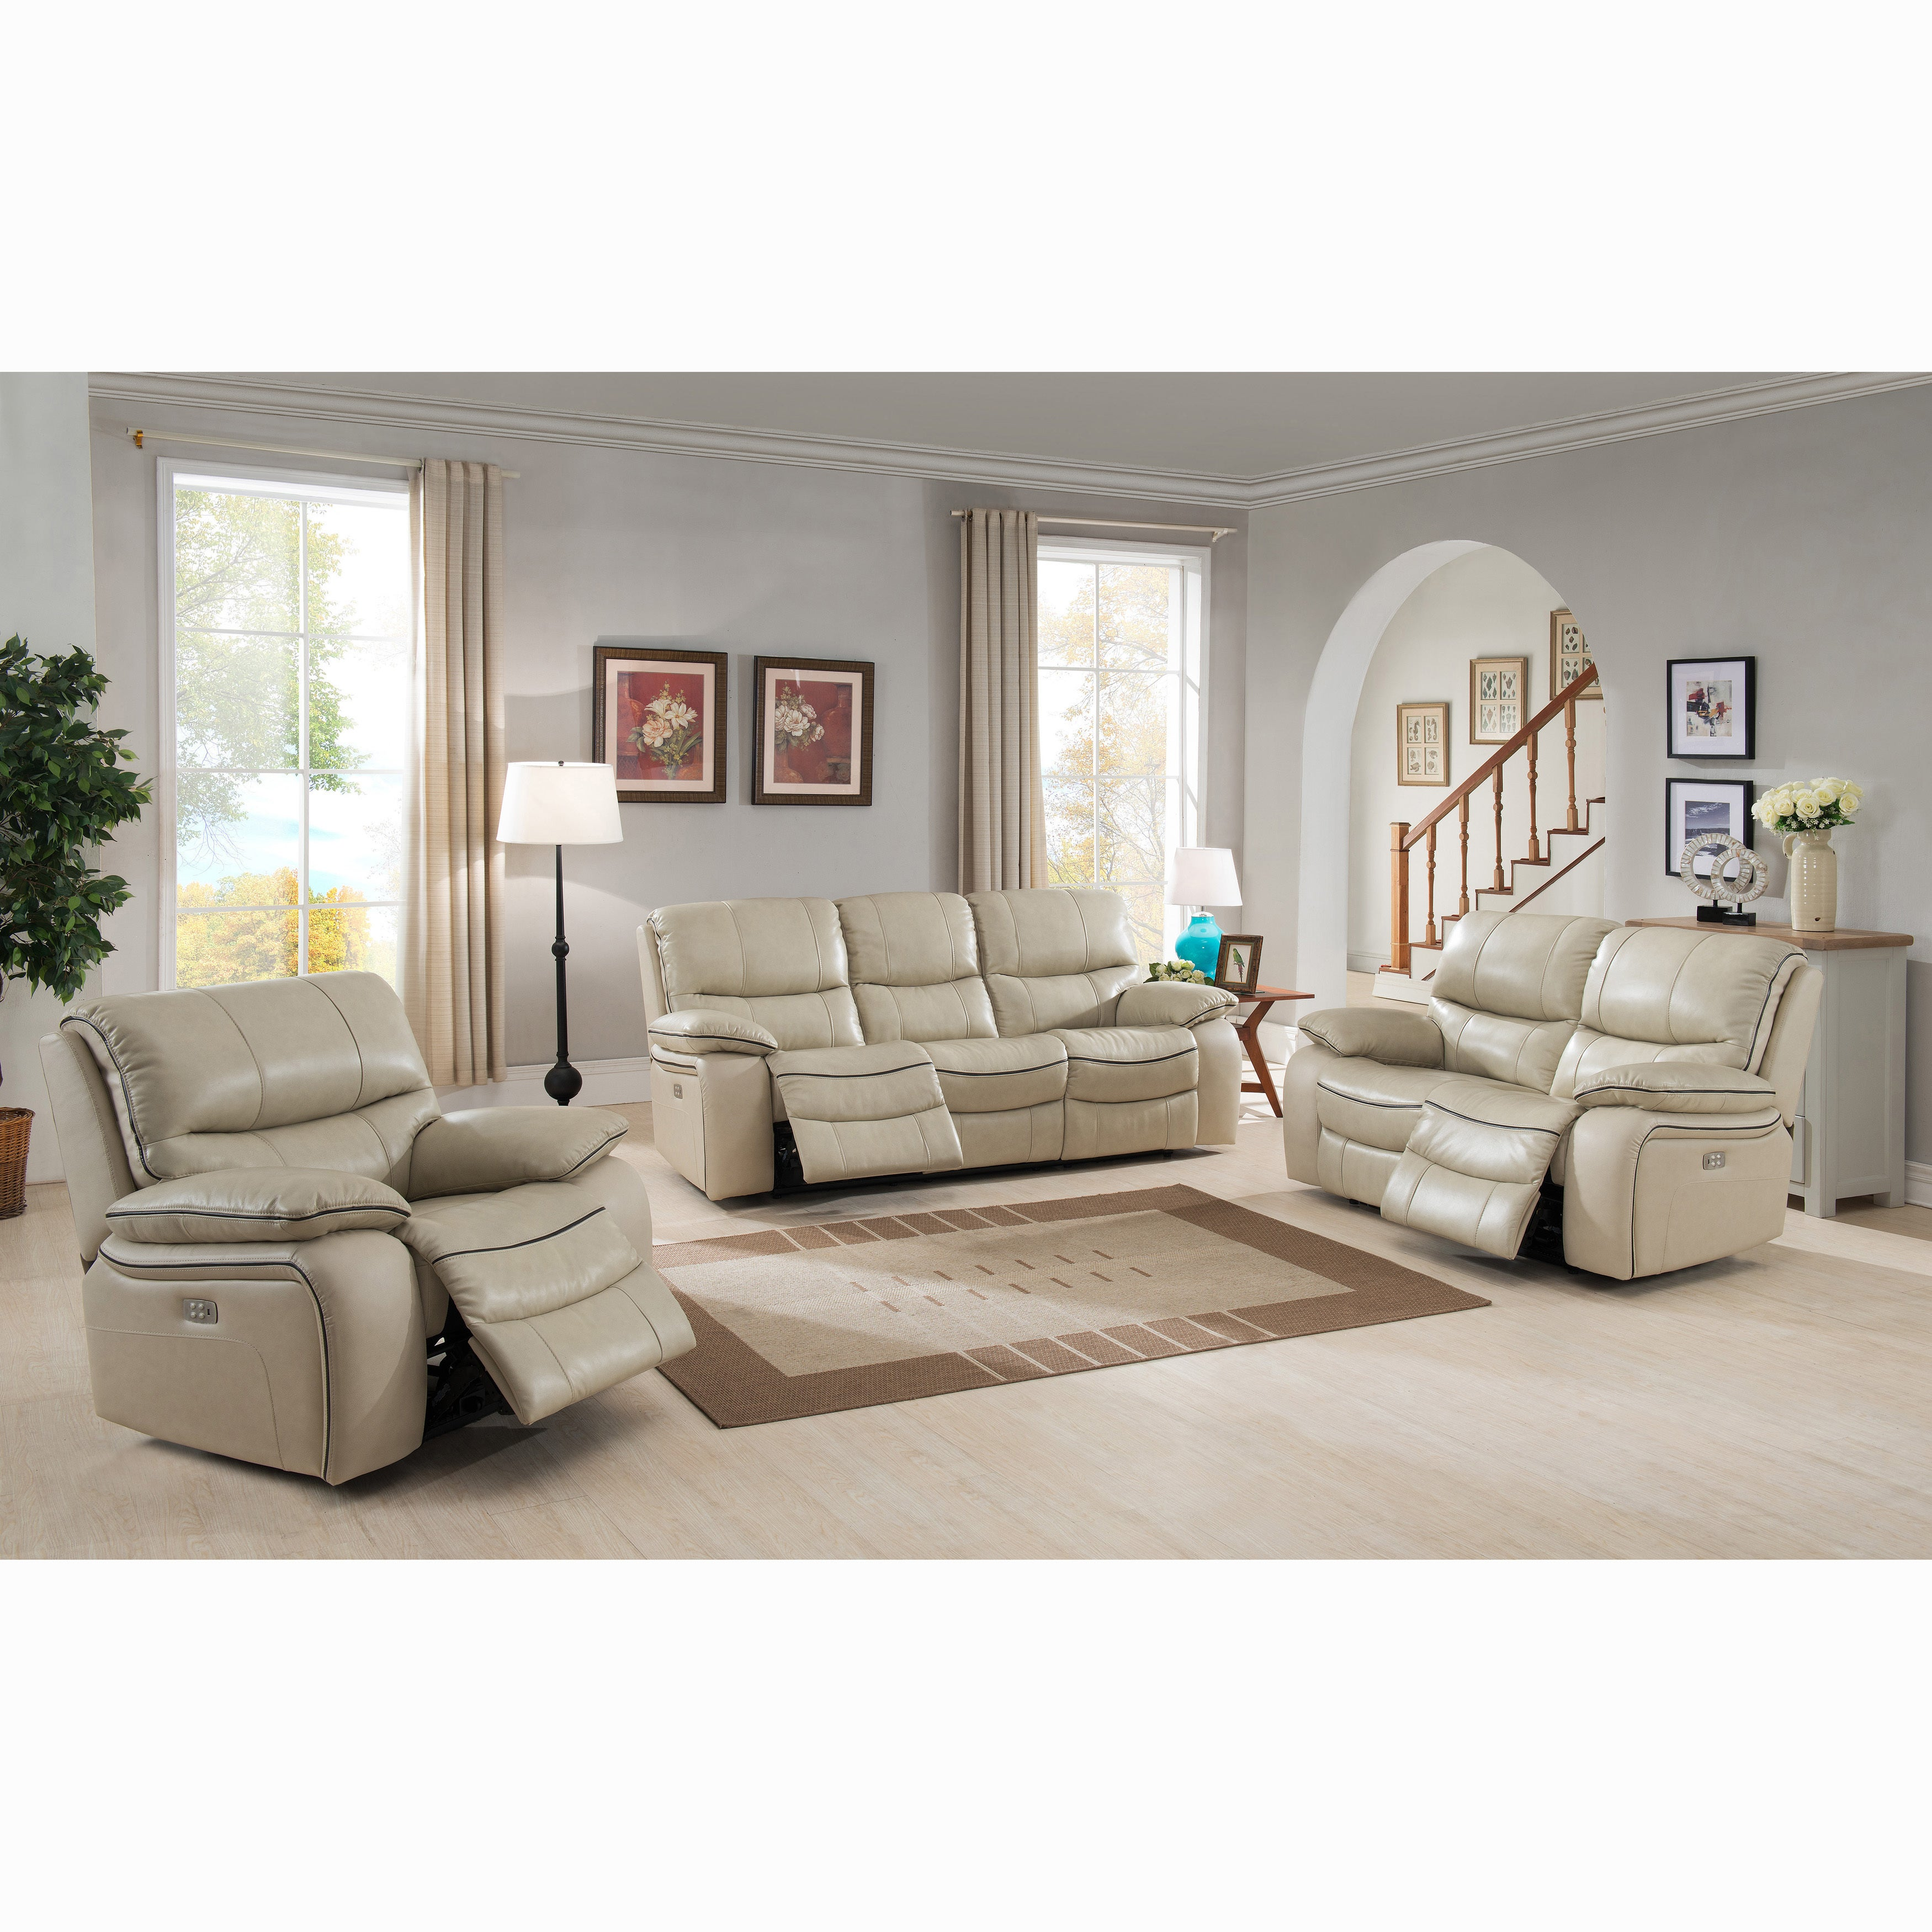 Shop Luca Ivory Top Grain Leather Power Reclining Sofa, Loveseat and ...